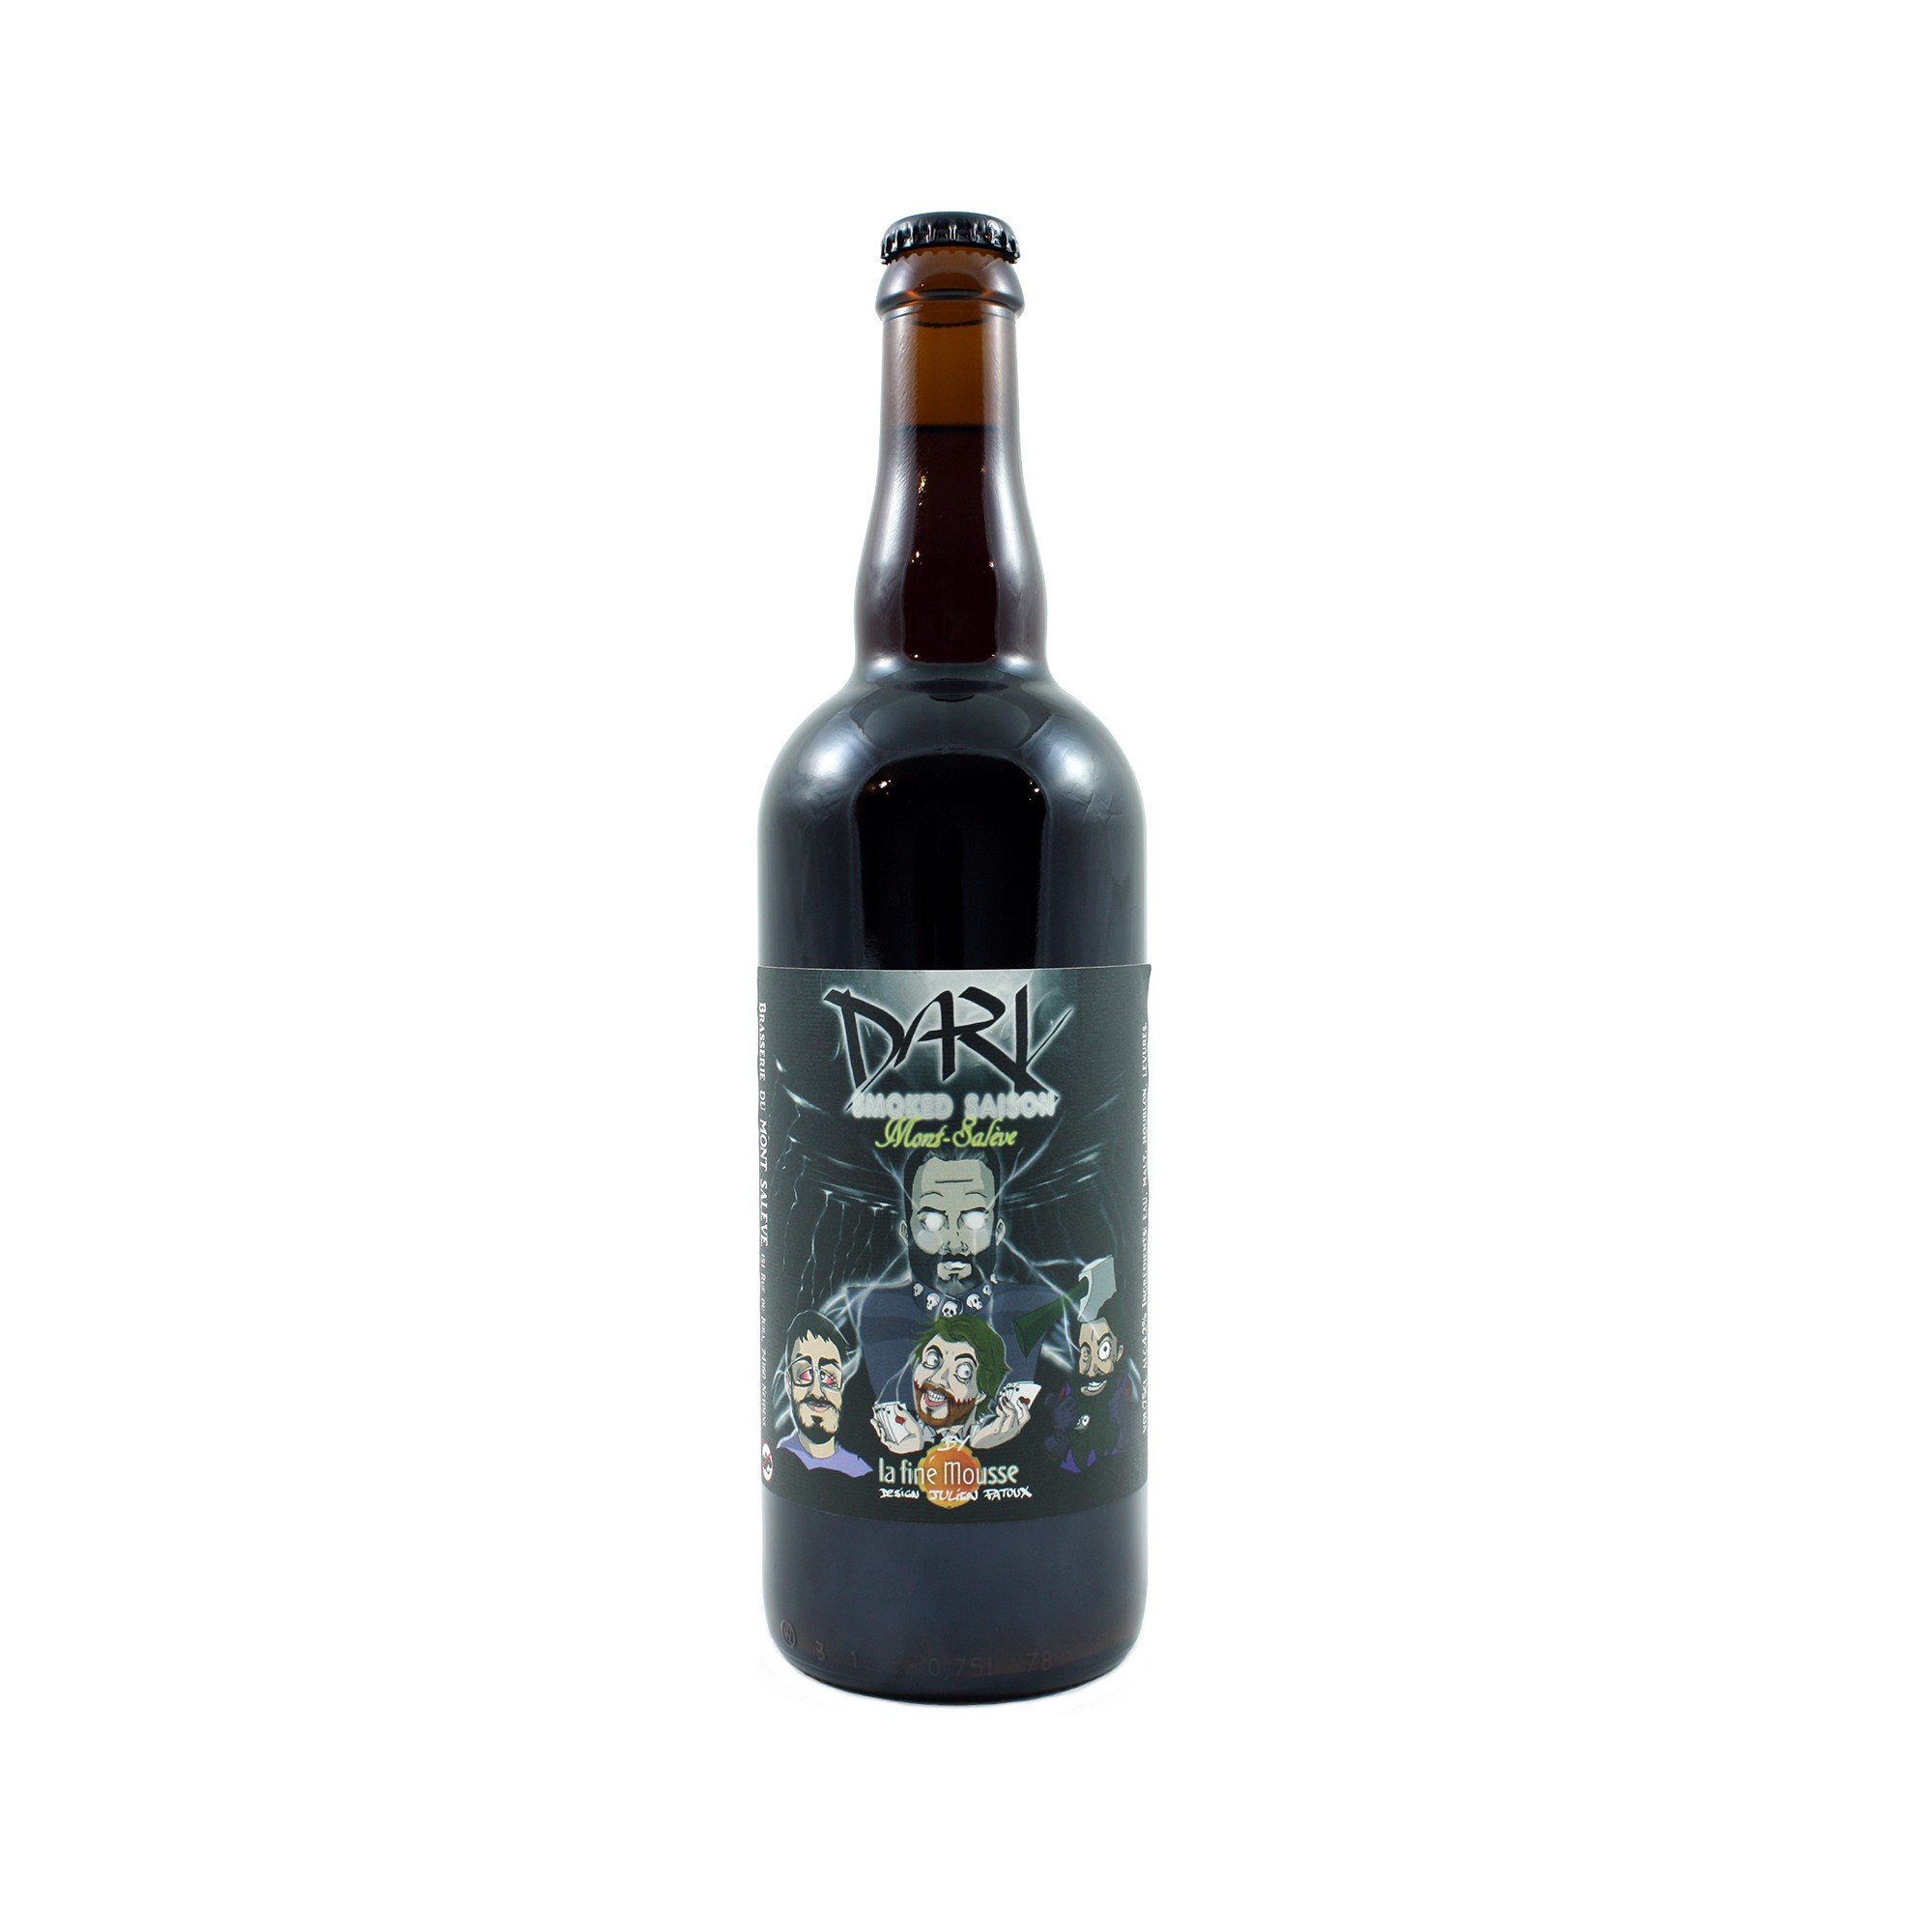 Dark Smoked Saison 75 cl